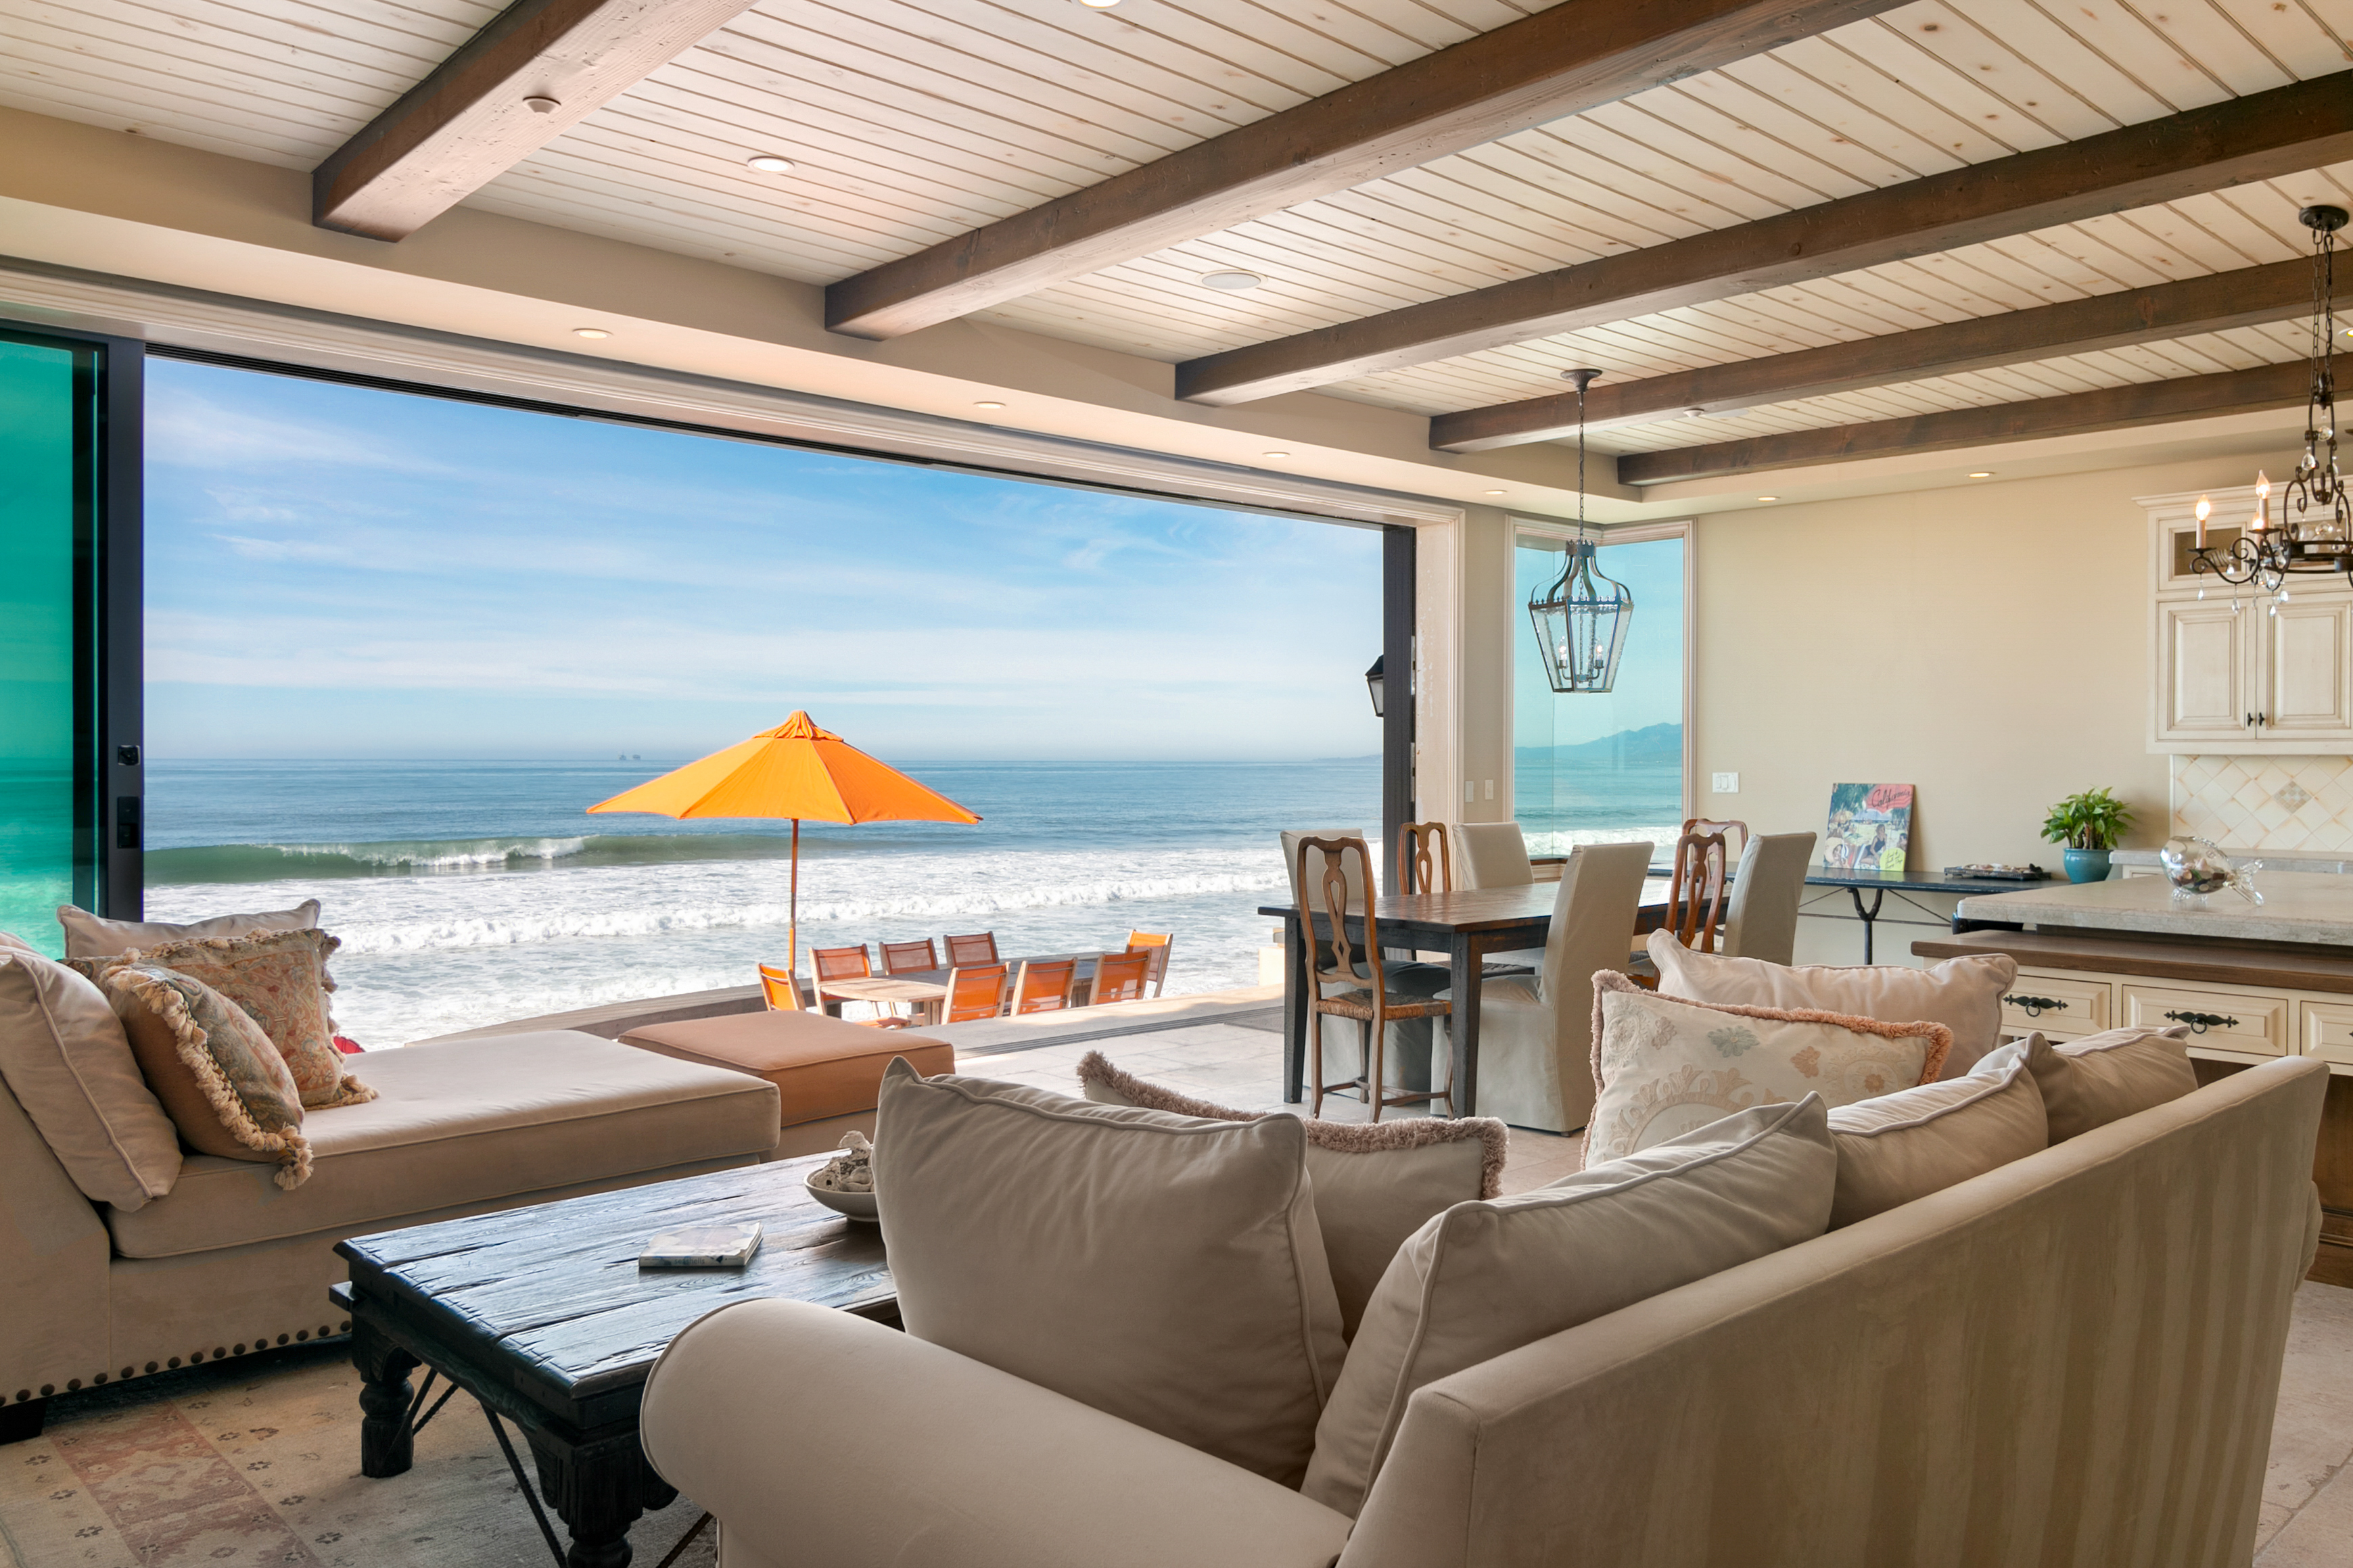 Ventura CA Vacation Rental Welcome! This beachfront